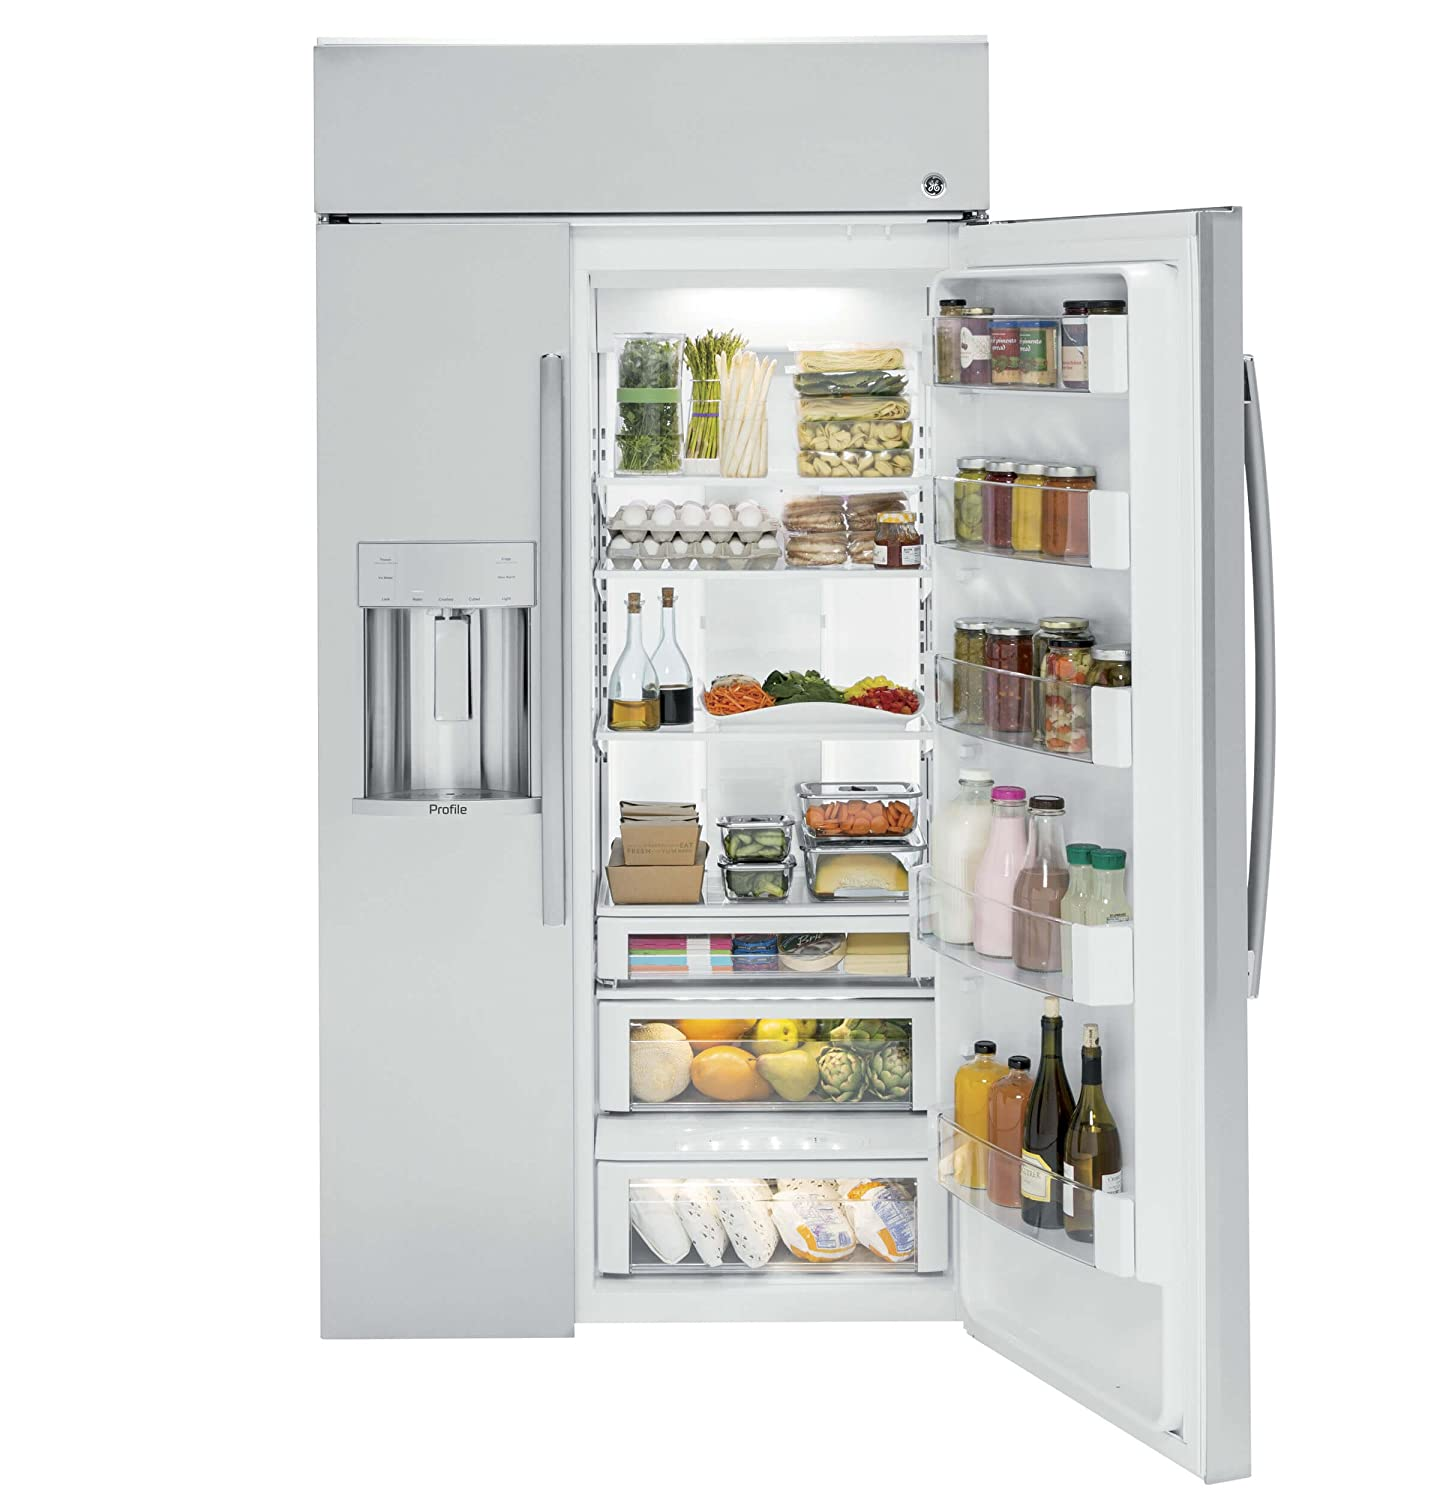 Amazon.com: GE PSB42YSKSS Profile 24.3 Cu. Ft. Stainless Steel Counter  Depth Built-In Side-By-Side Refrigerator: Appliances